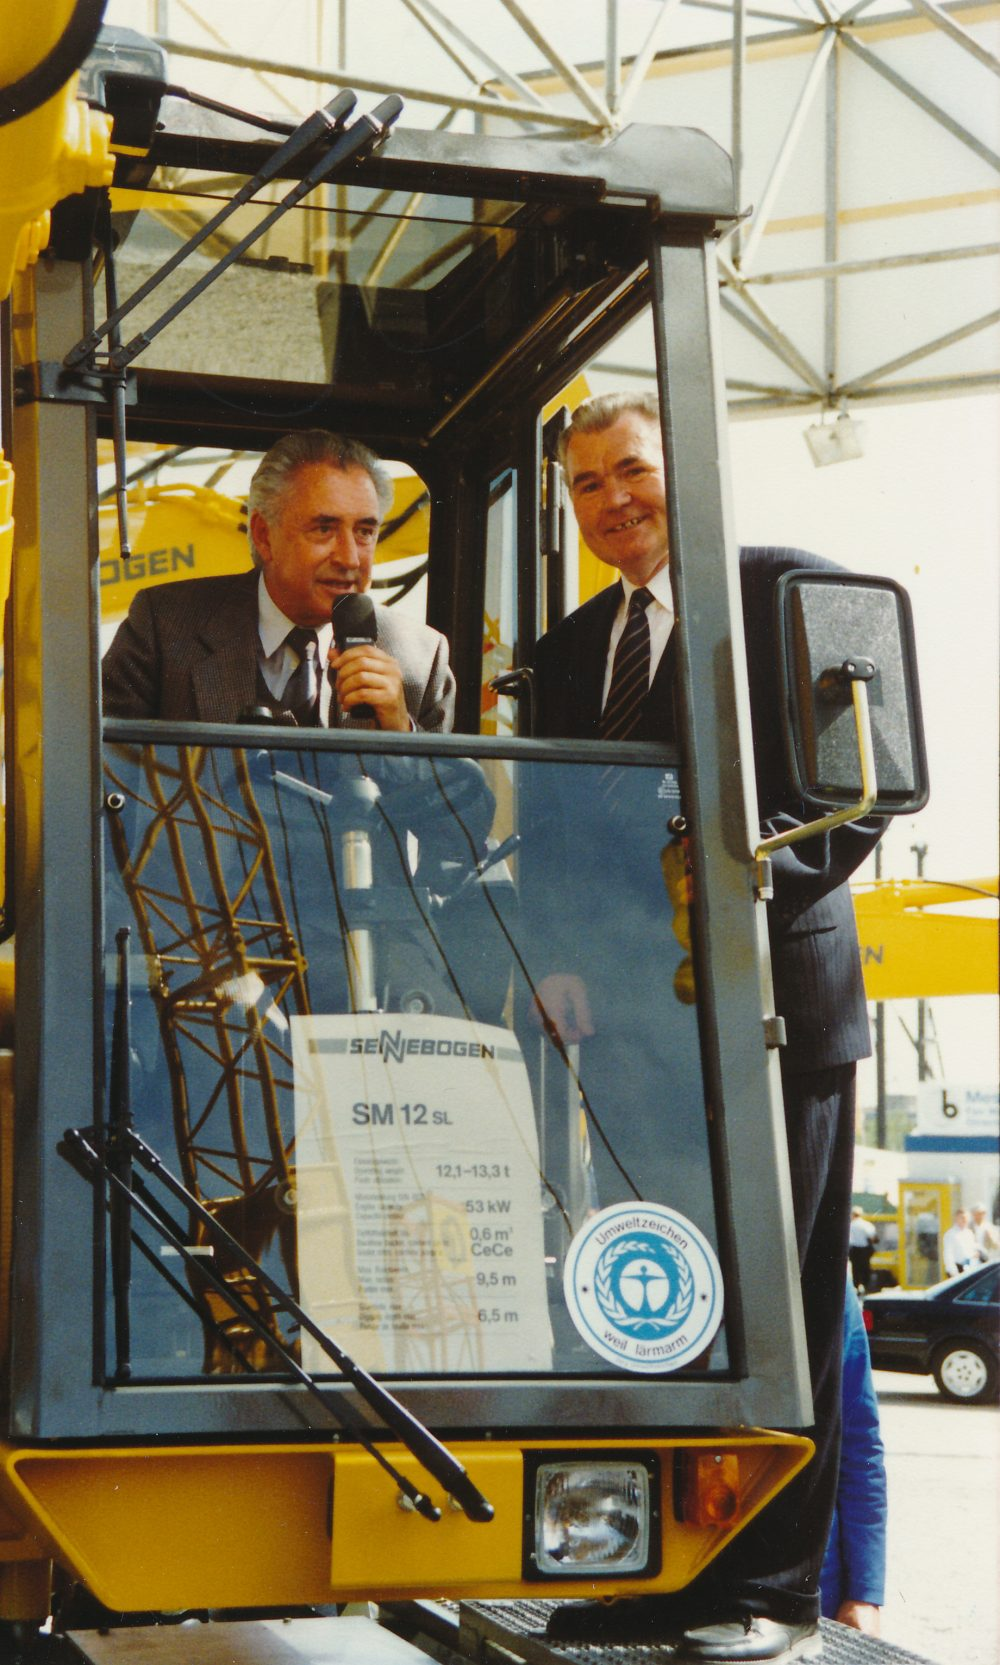 SENNEBOGEN's product innovations are always present at bauma in Muich. For example, the quietest excavator in the world in its day was awarded the blue environment angel in Munich in 1989.